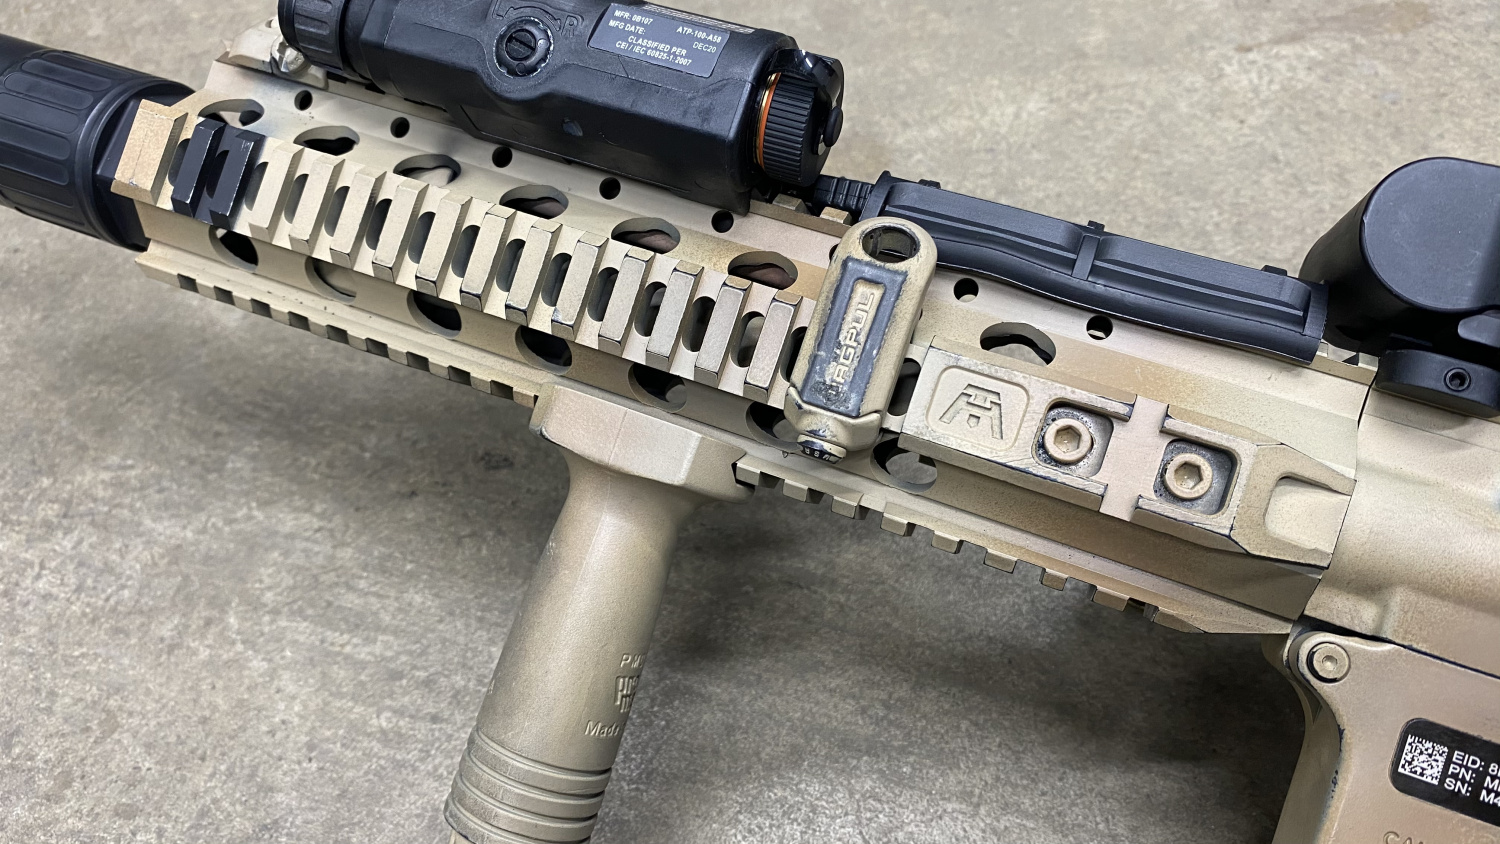 Type-A Unveils the New CQBR Block II Resto-Mod Rifle